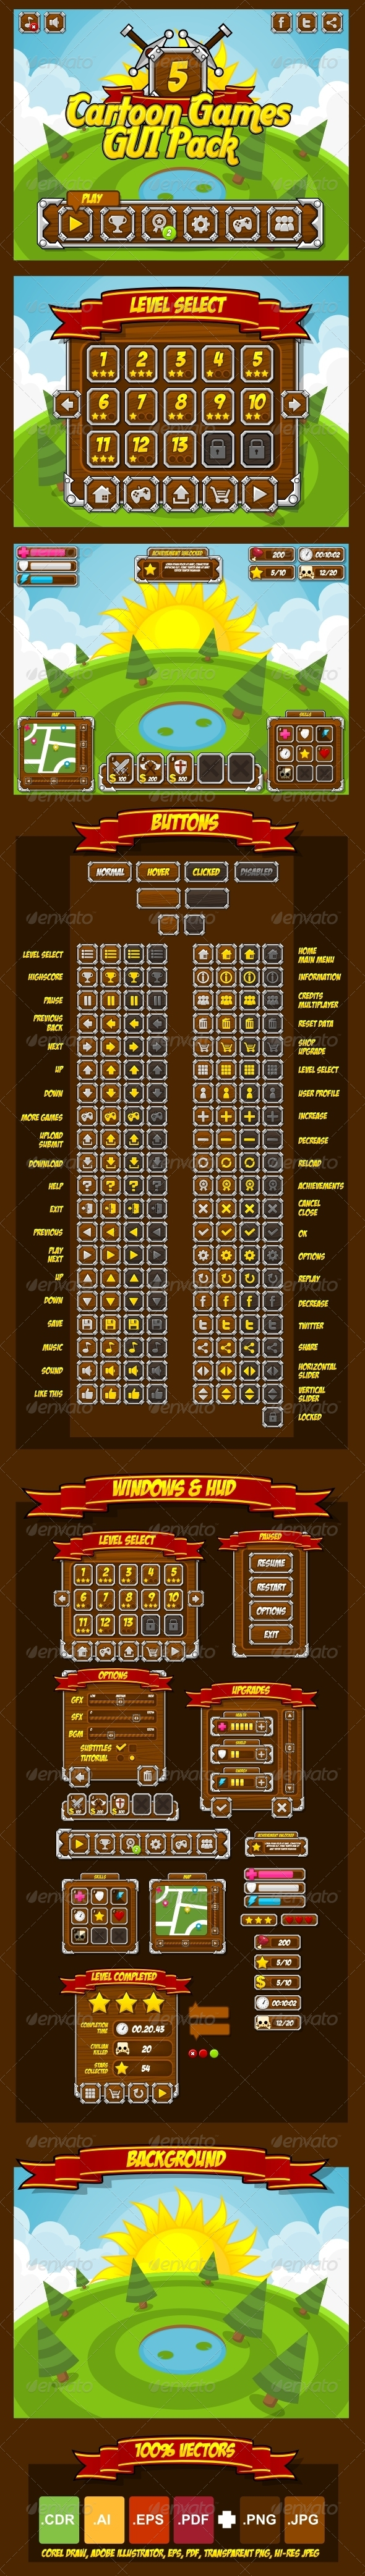 GraphicRiver Cartoon Games GUI Pack 5 4708033